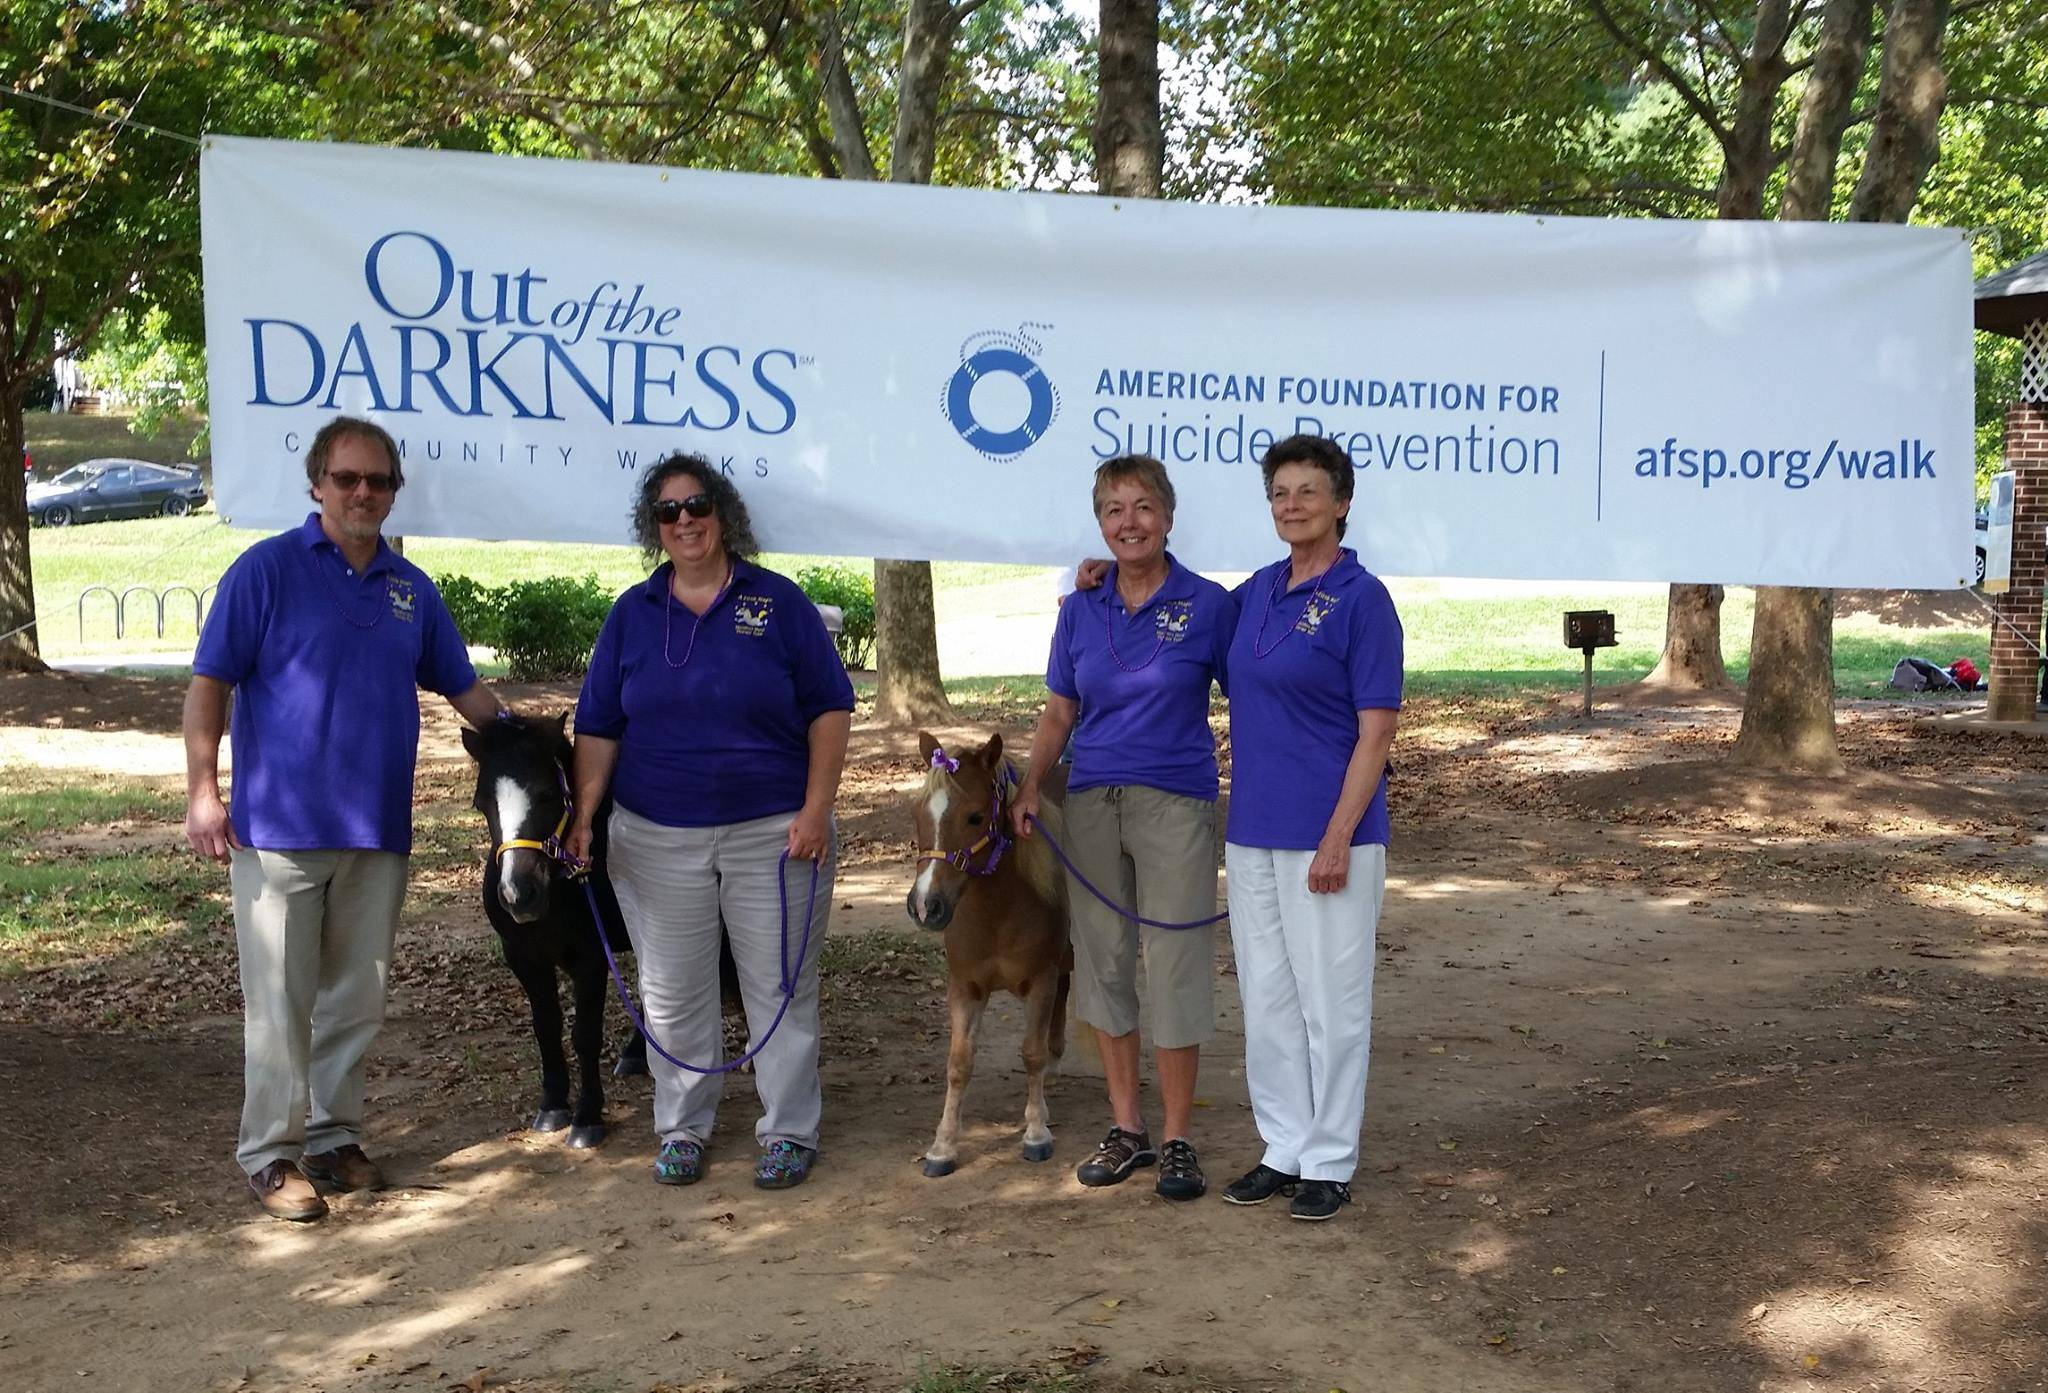 Out of the Darkness - Suicide Prevention Walk